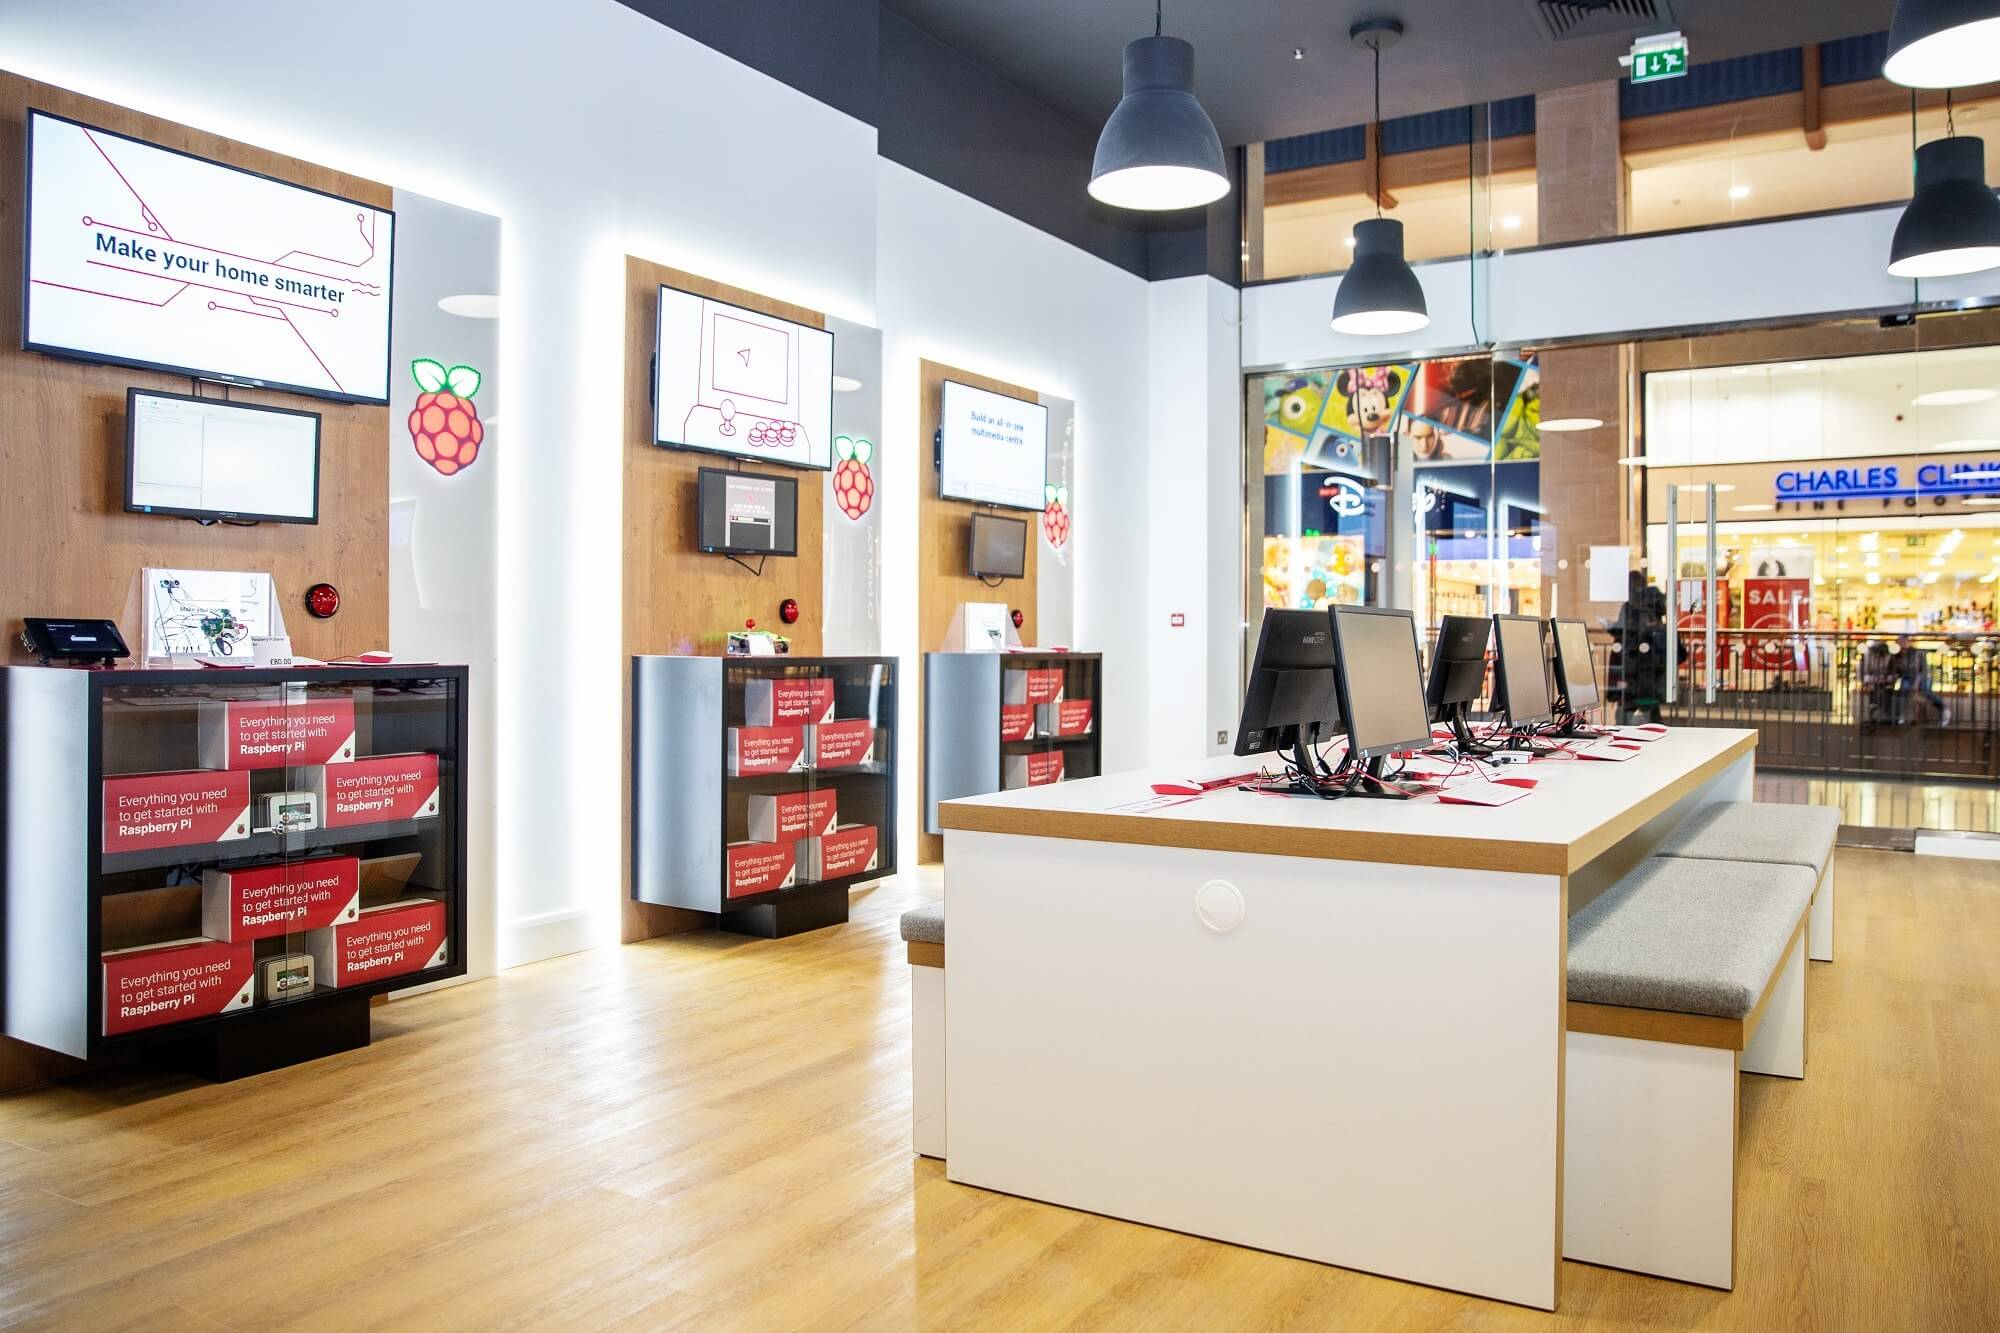 Raspberry Pi opens its first brick-and-mortar store